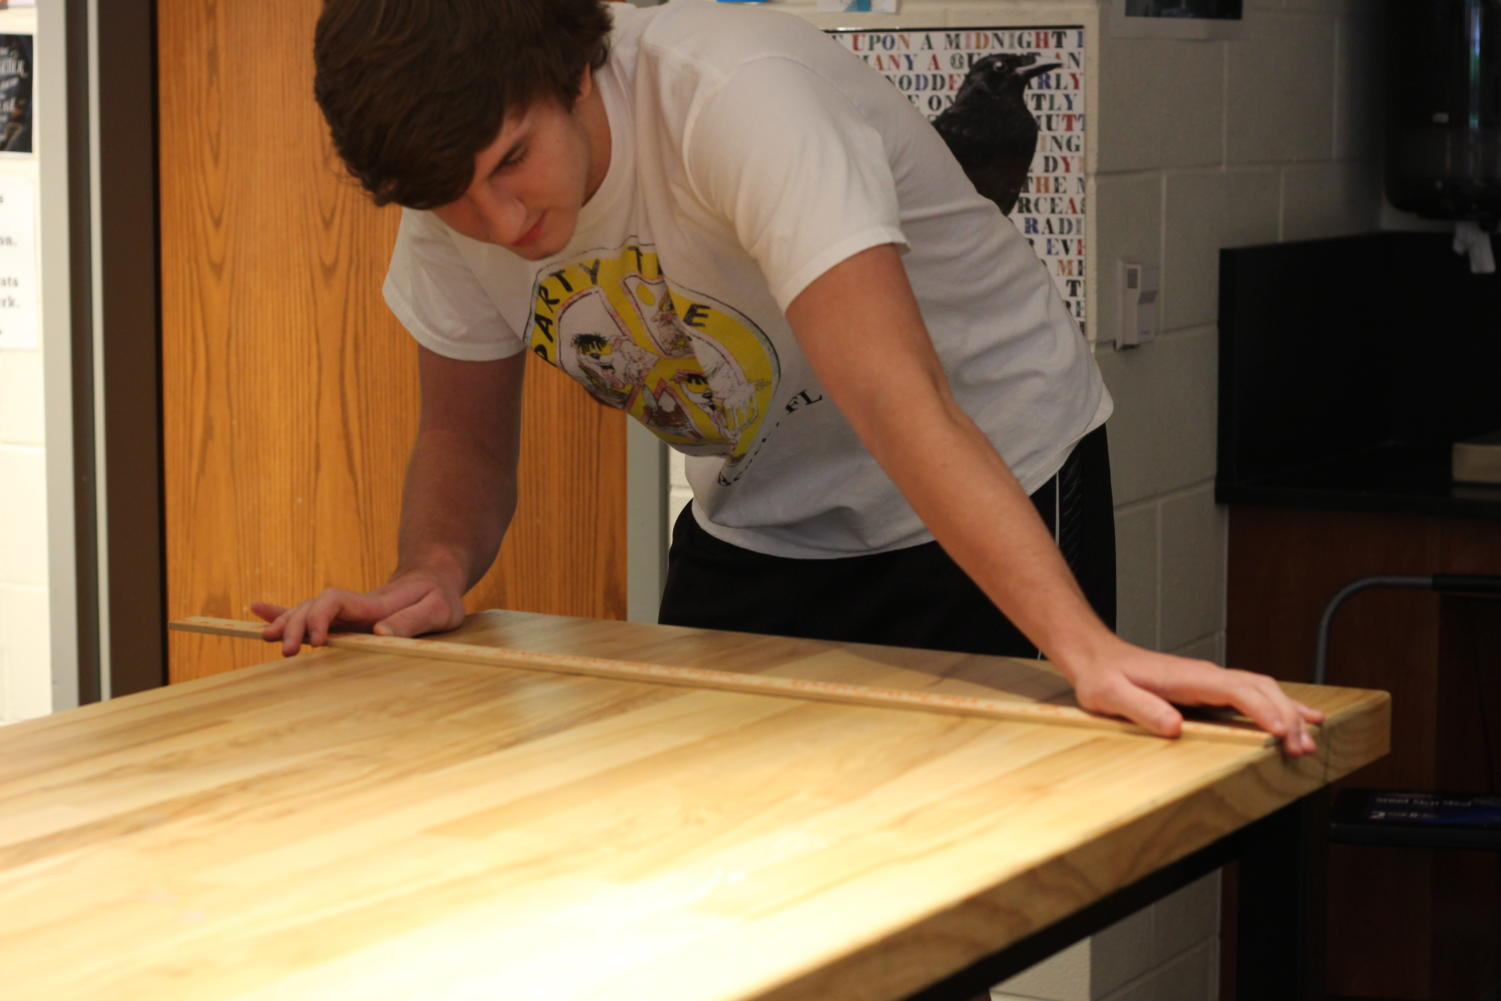 Seniors Luke Ledebur and JD Davidson spent their summer building desks and chairs for school districts across the metroplex.